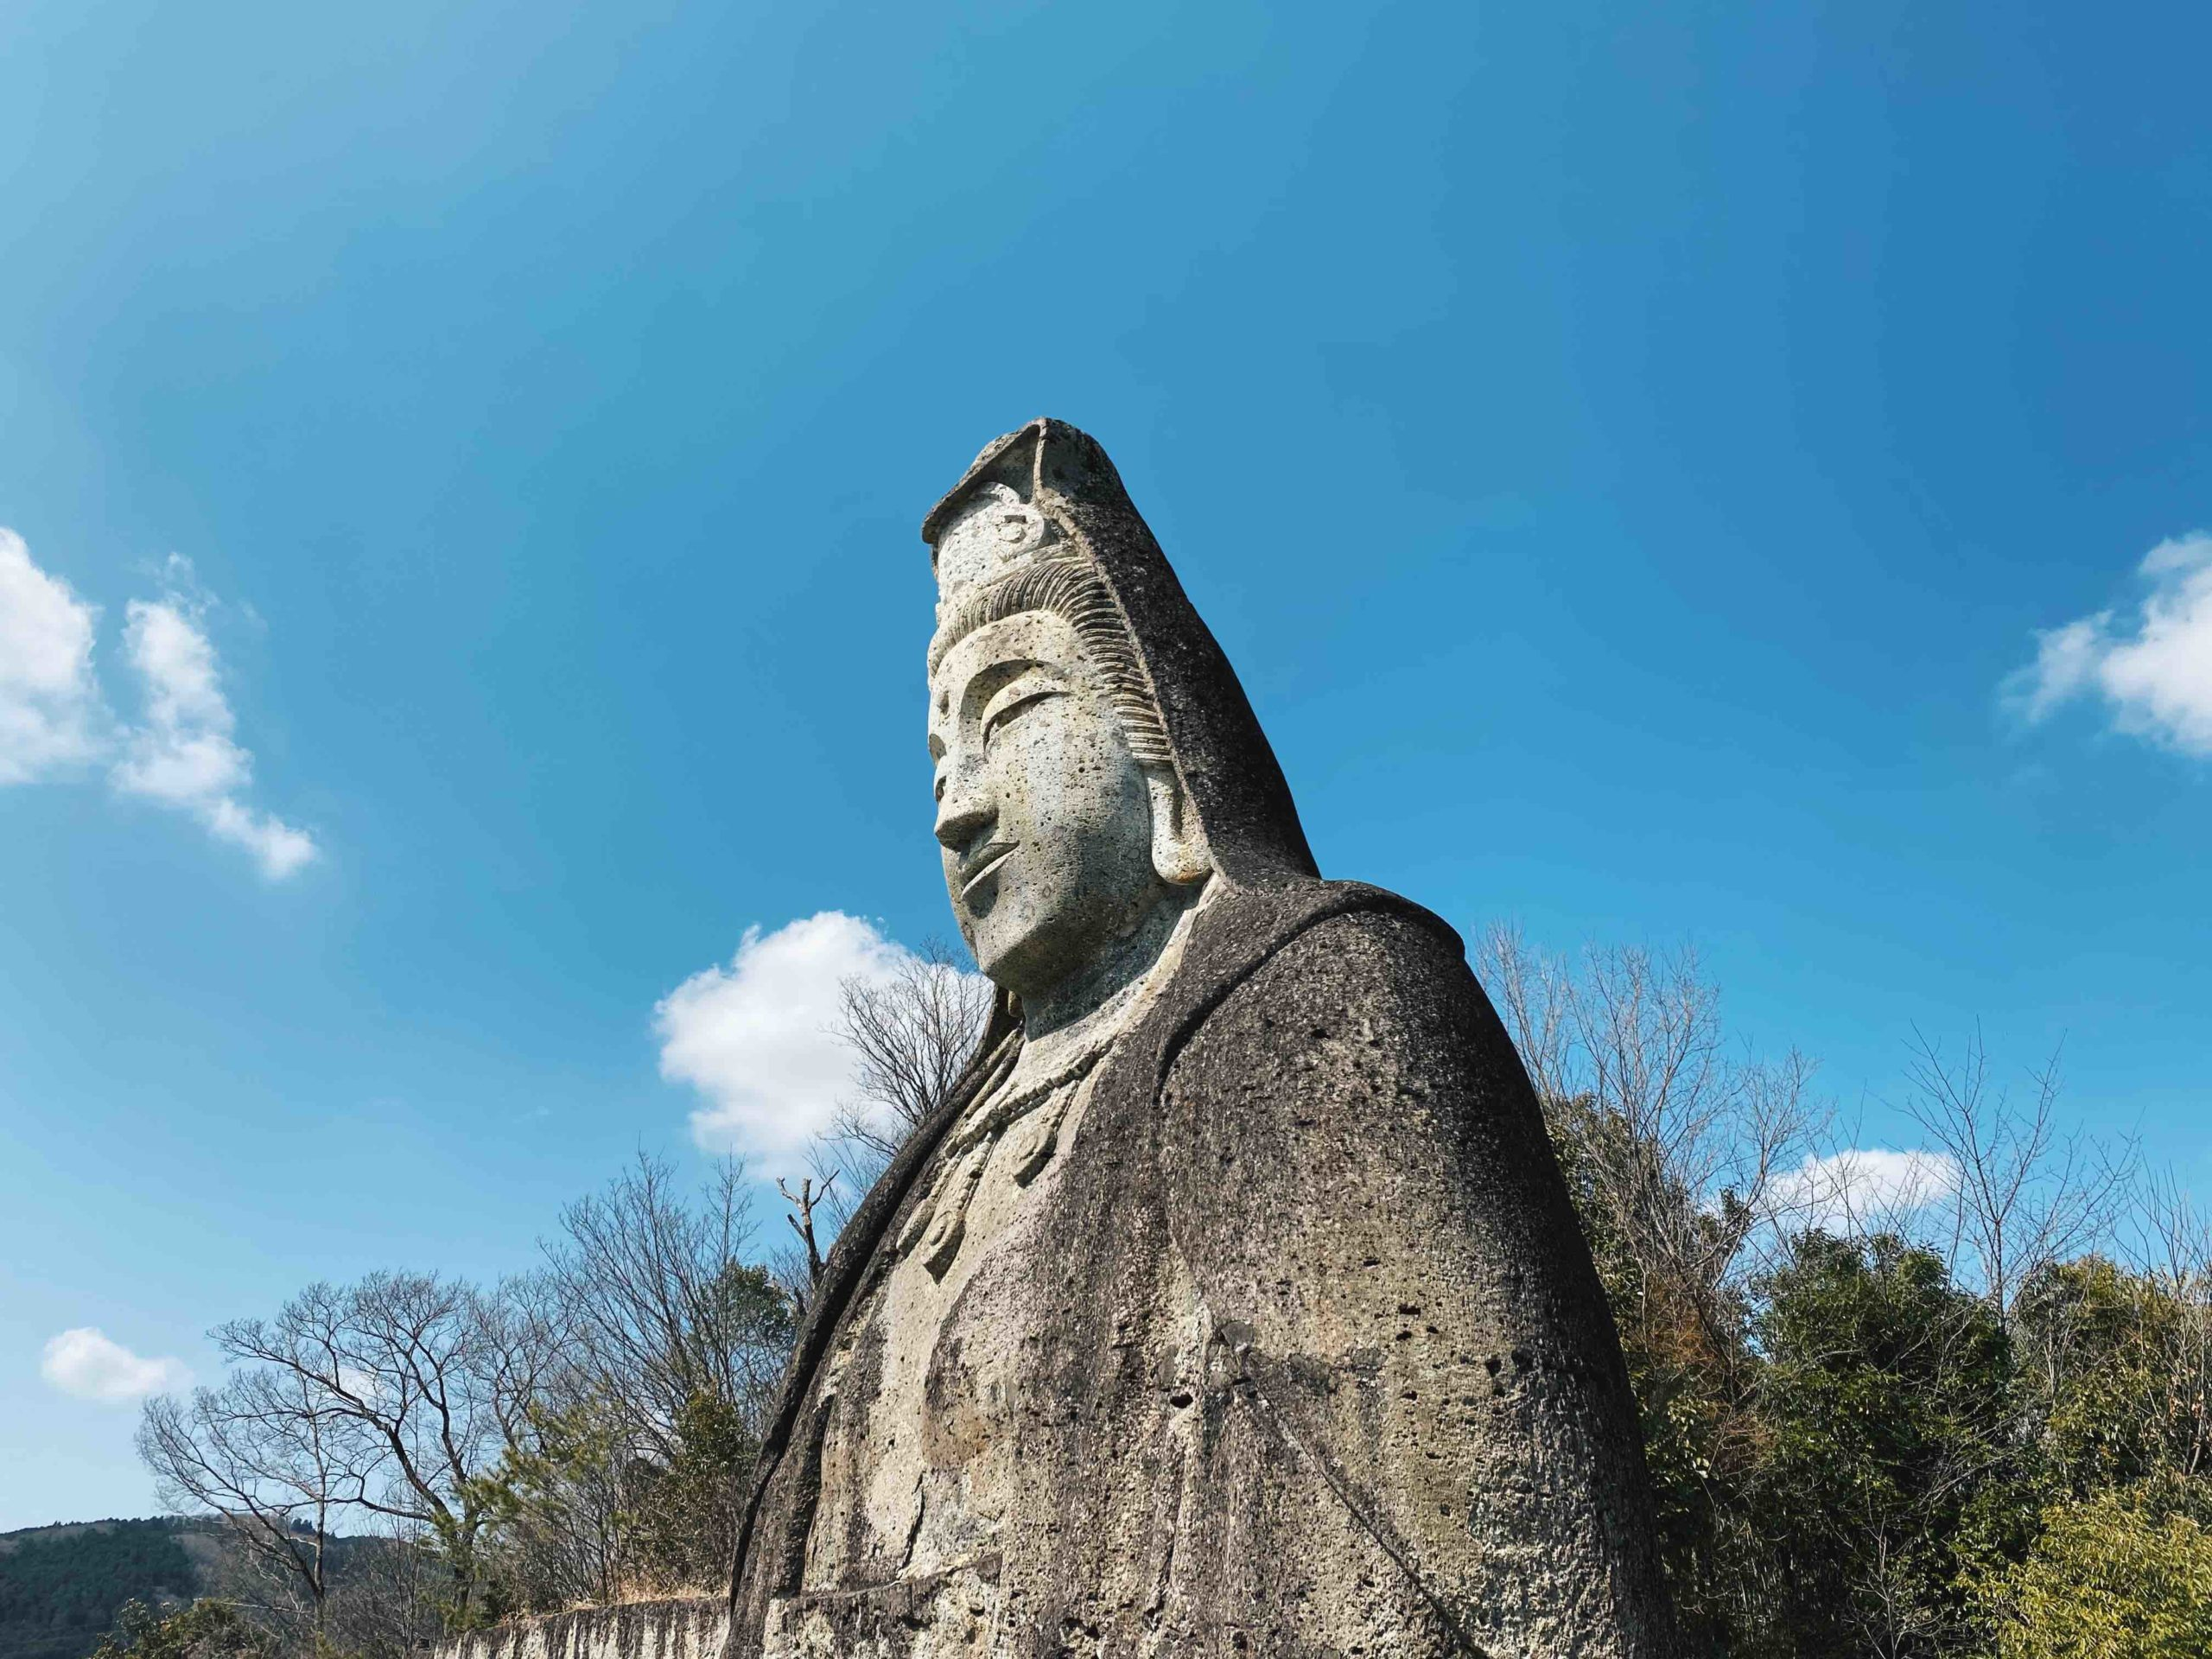 www.theaureview.com: Oya, the Japanese City that turned to stone